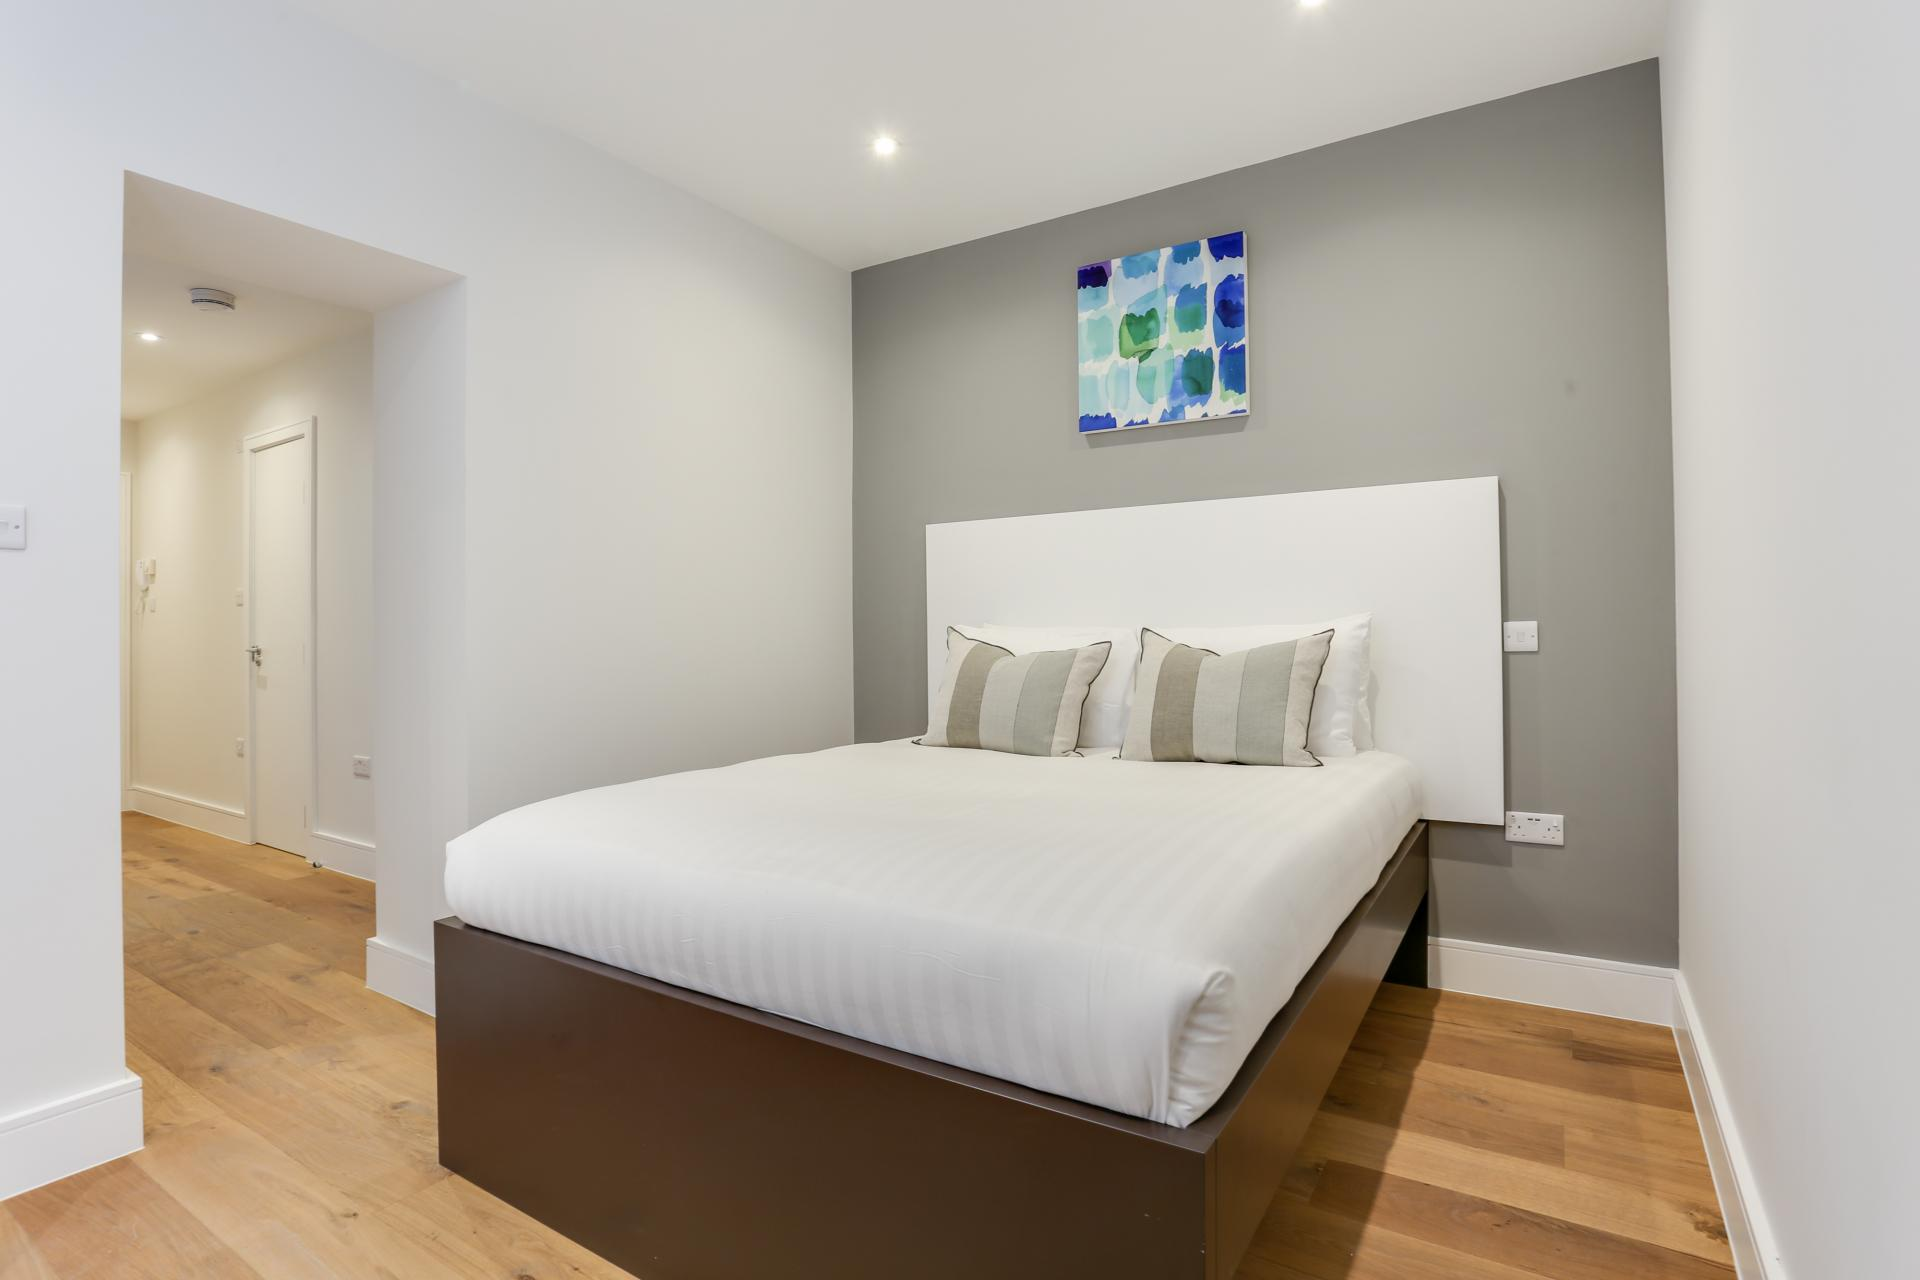 Double bed at Queensborough Terrace, Bayswater, London - Citybase Apartments